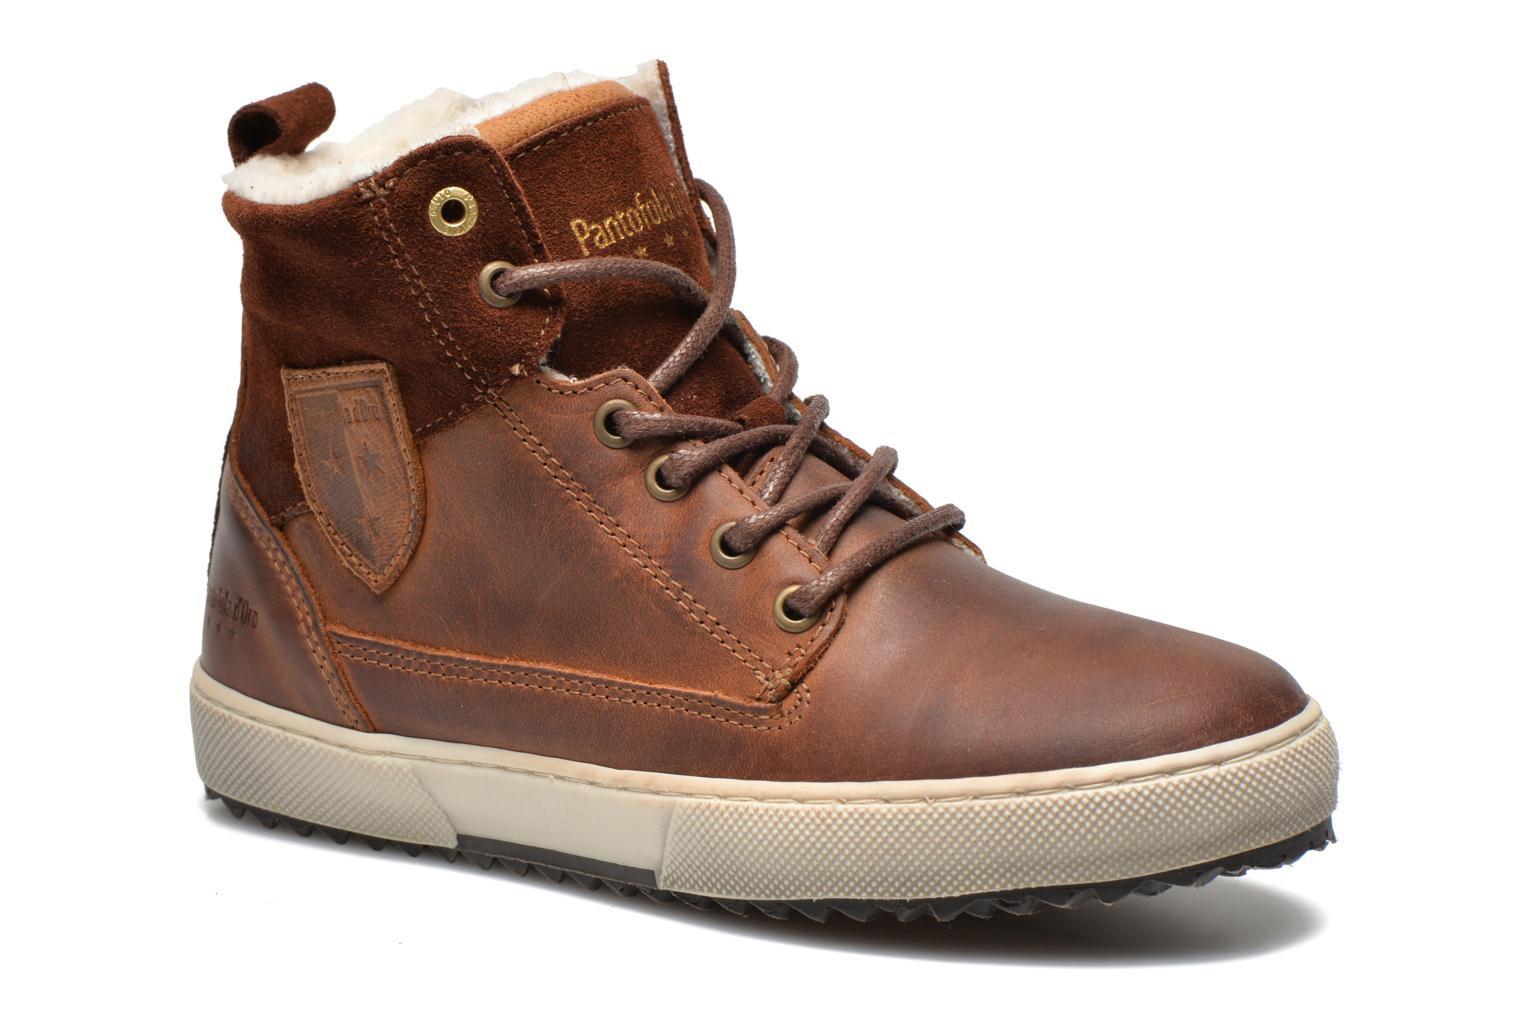 Sneakers Benevento Mid by Pantofola d'Oro